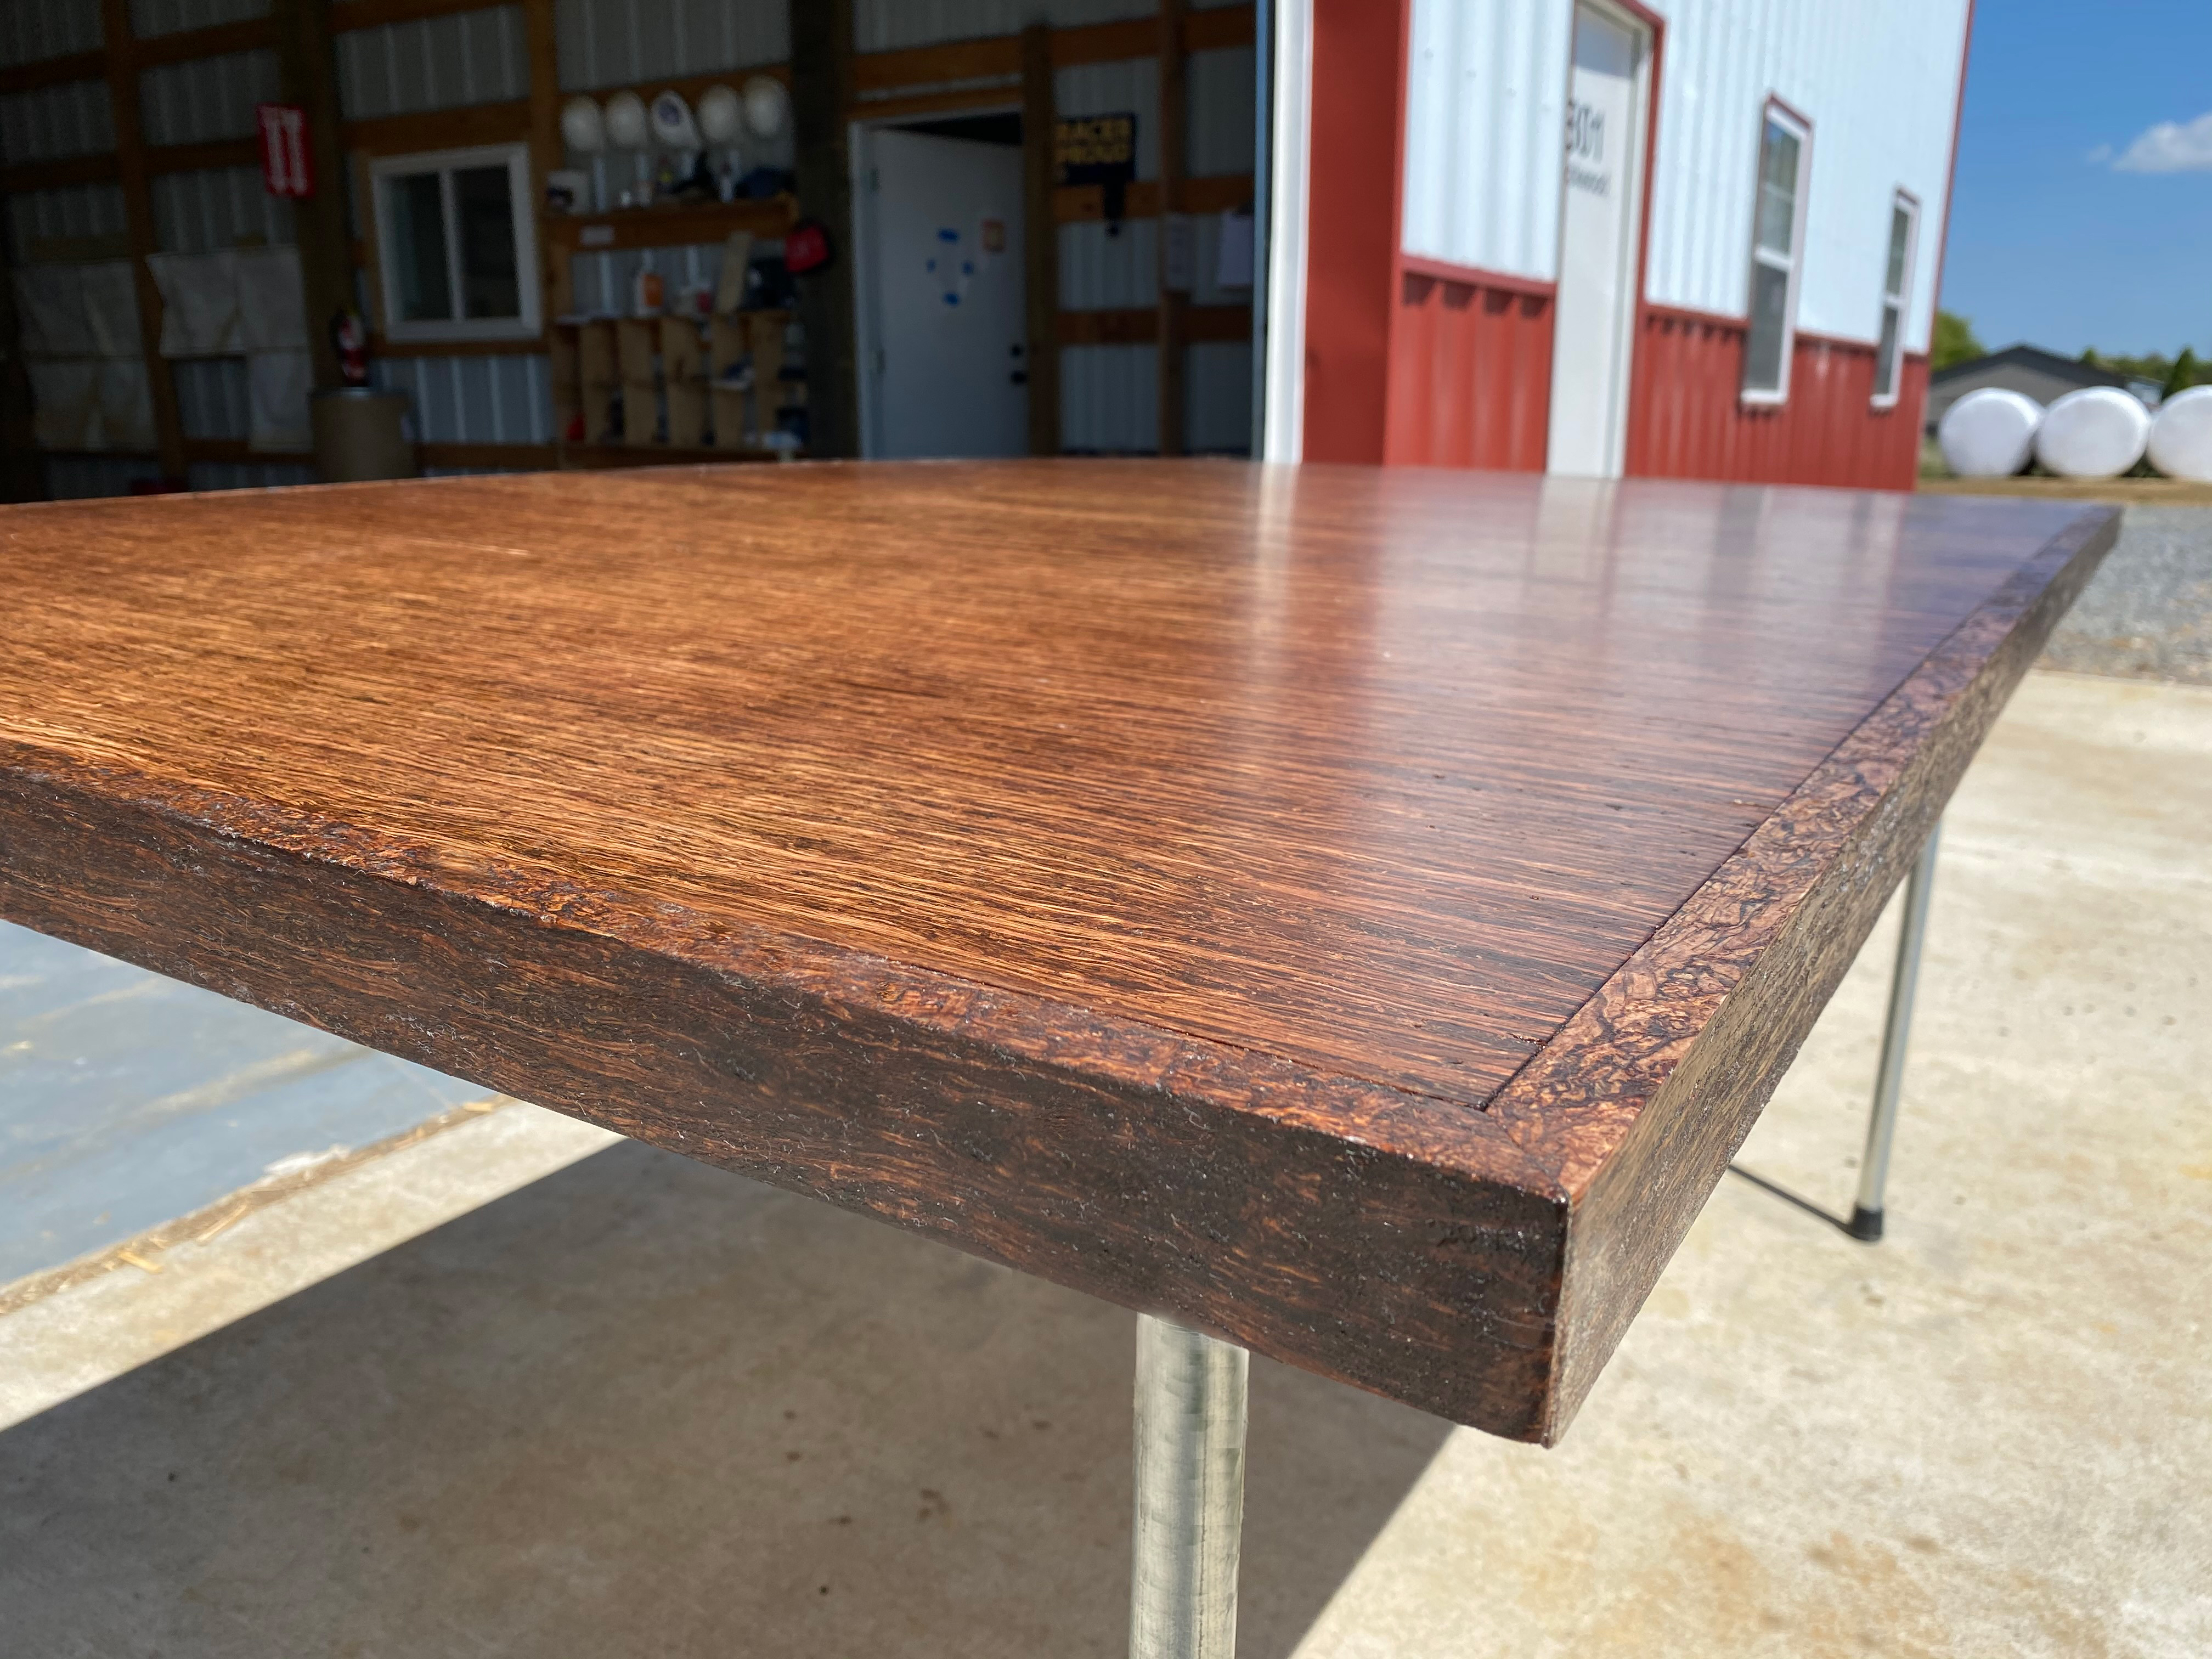 DIY HempWood table kit